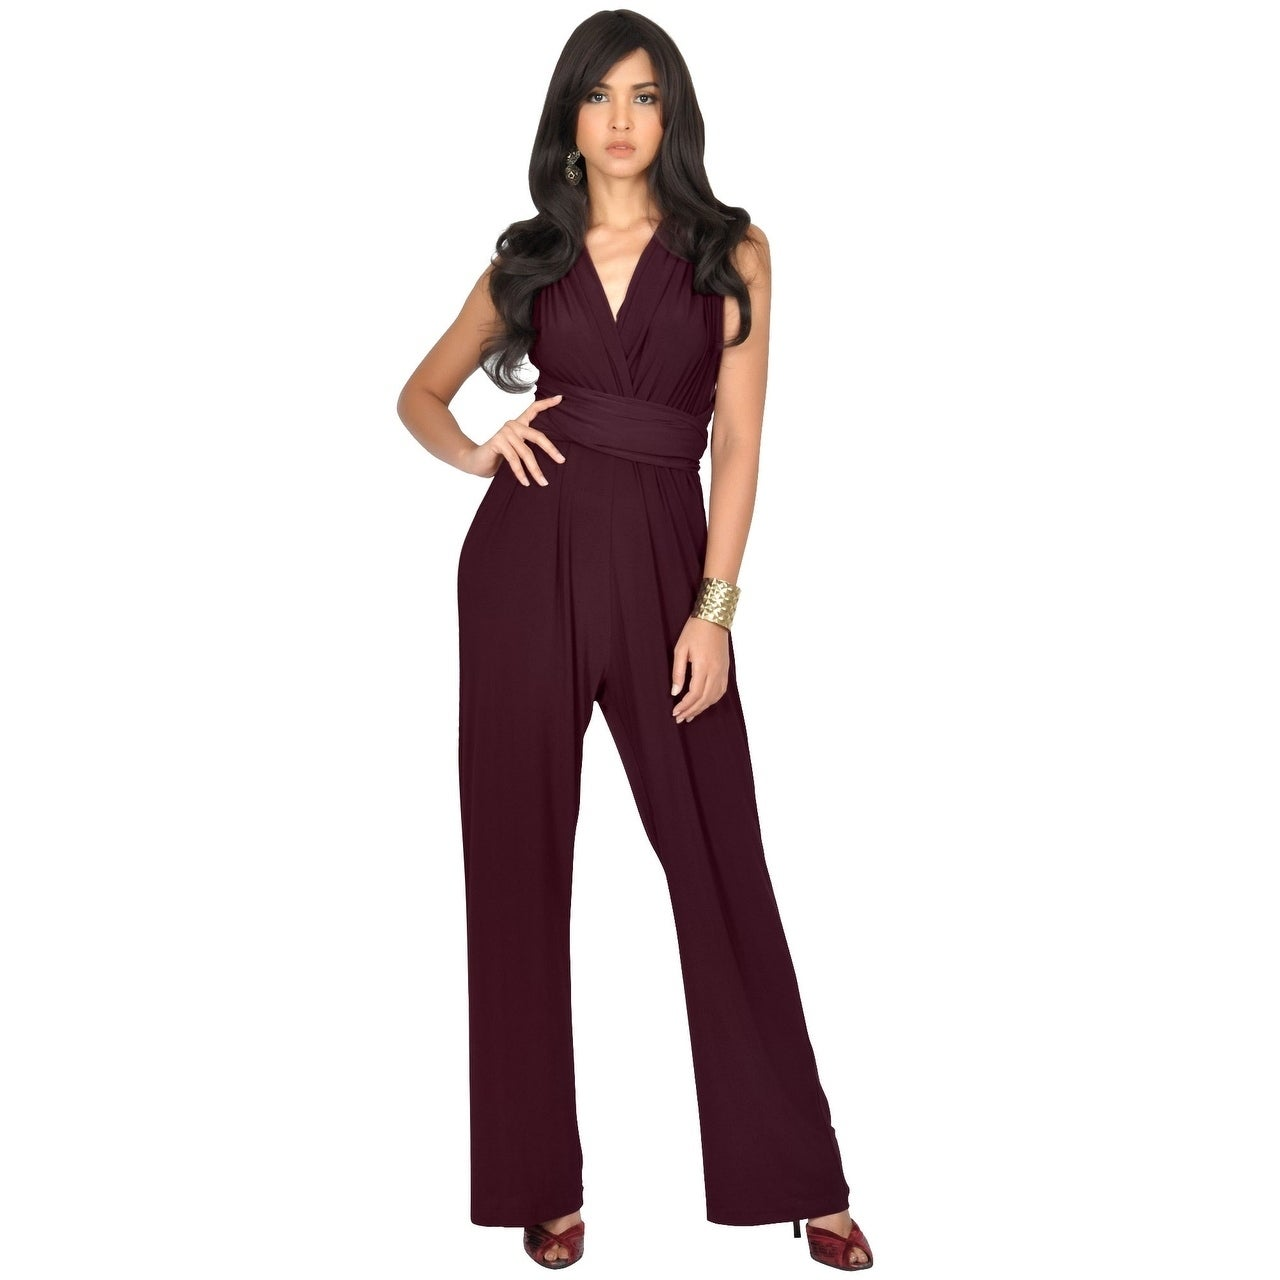 77c176c8802 Shop KOH KOH Womens Convertible Wrap Cocktail Party Jumpsuit Romper Pants - Free  Shipping Today - Overstock - 12736524